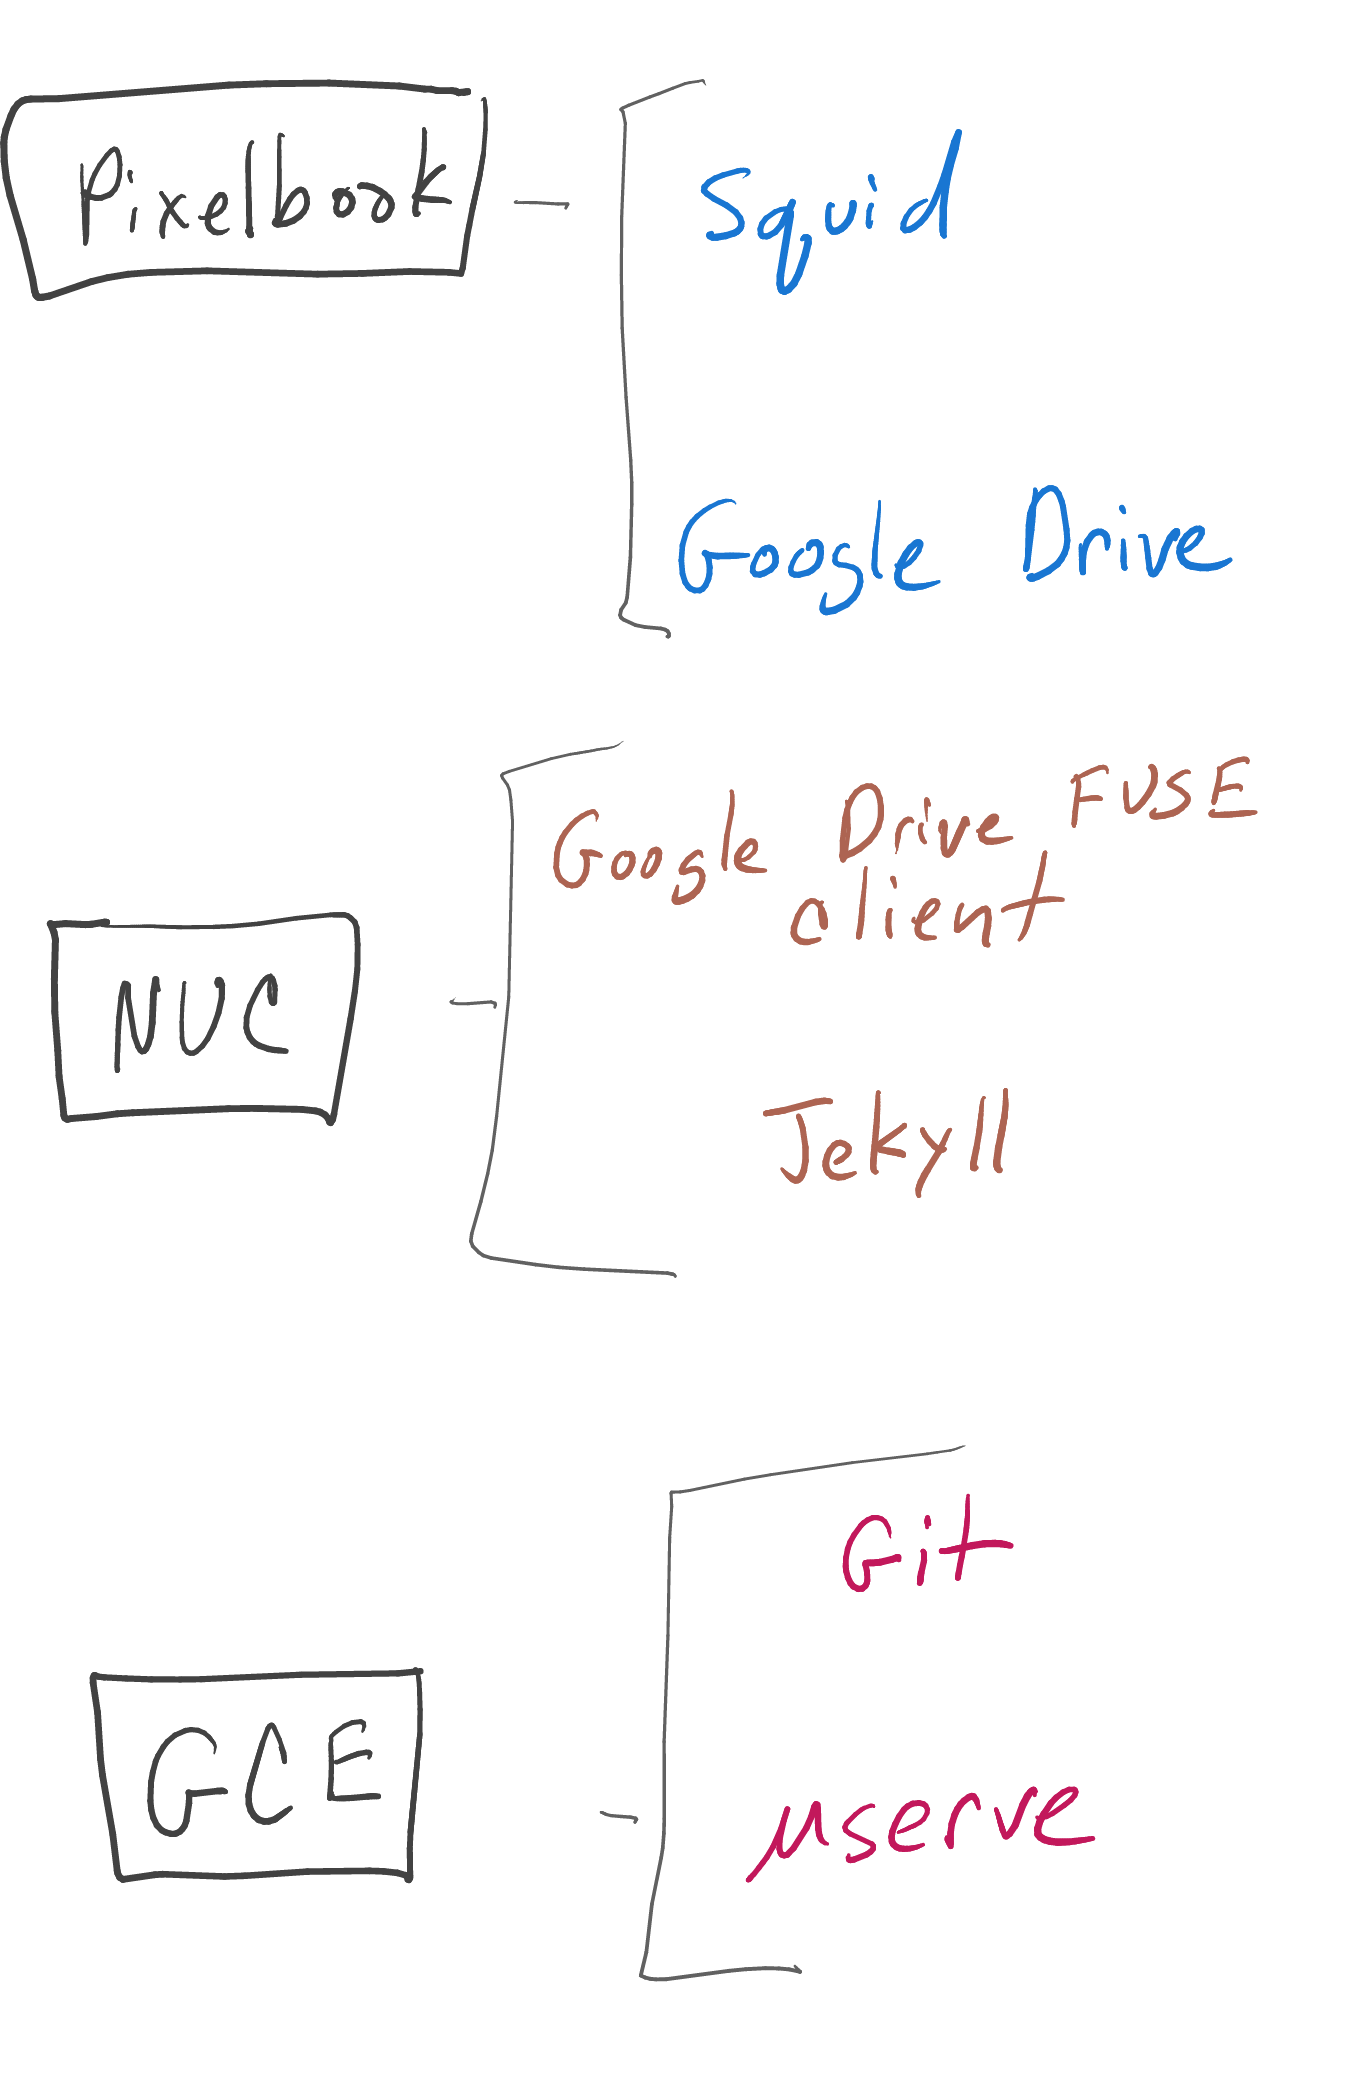 Squid to Google Drive to Jekyll to GCE